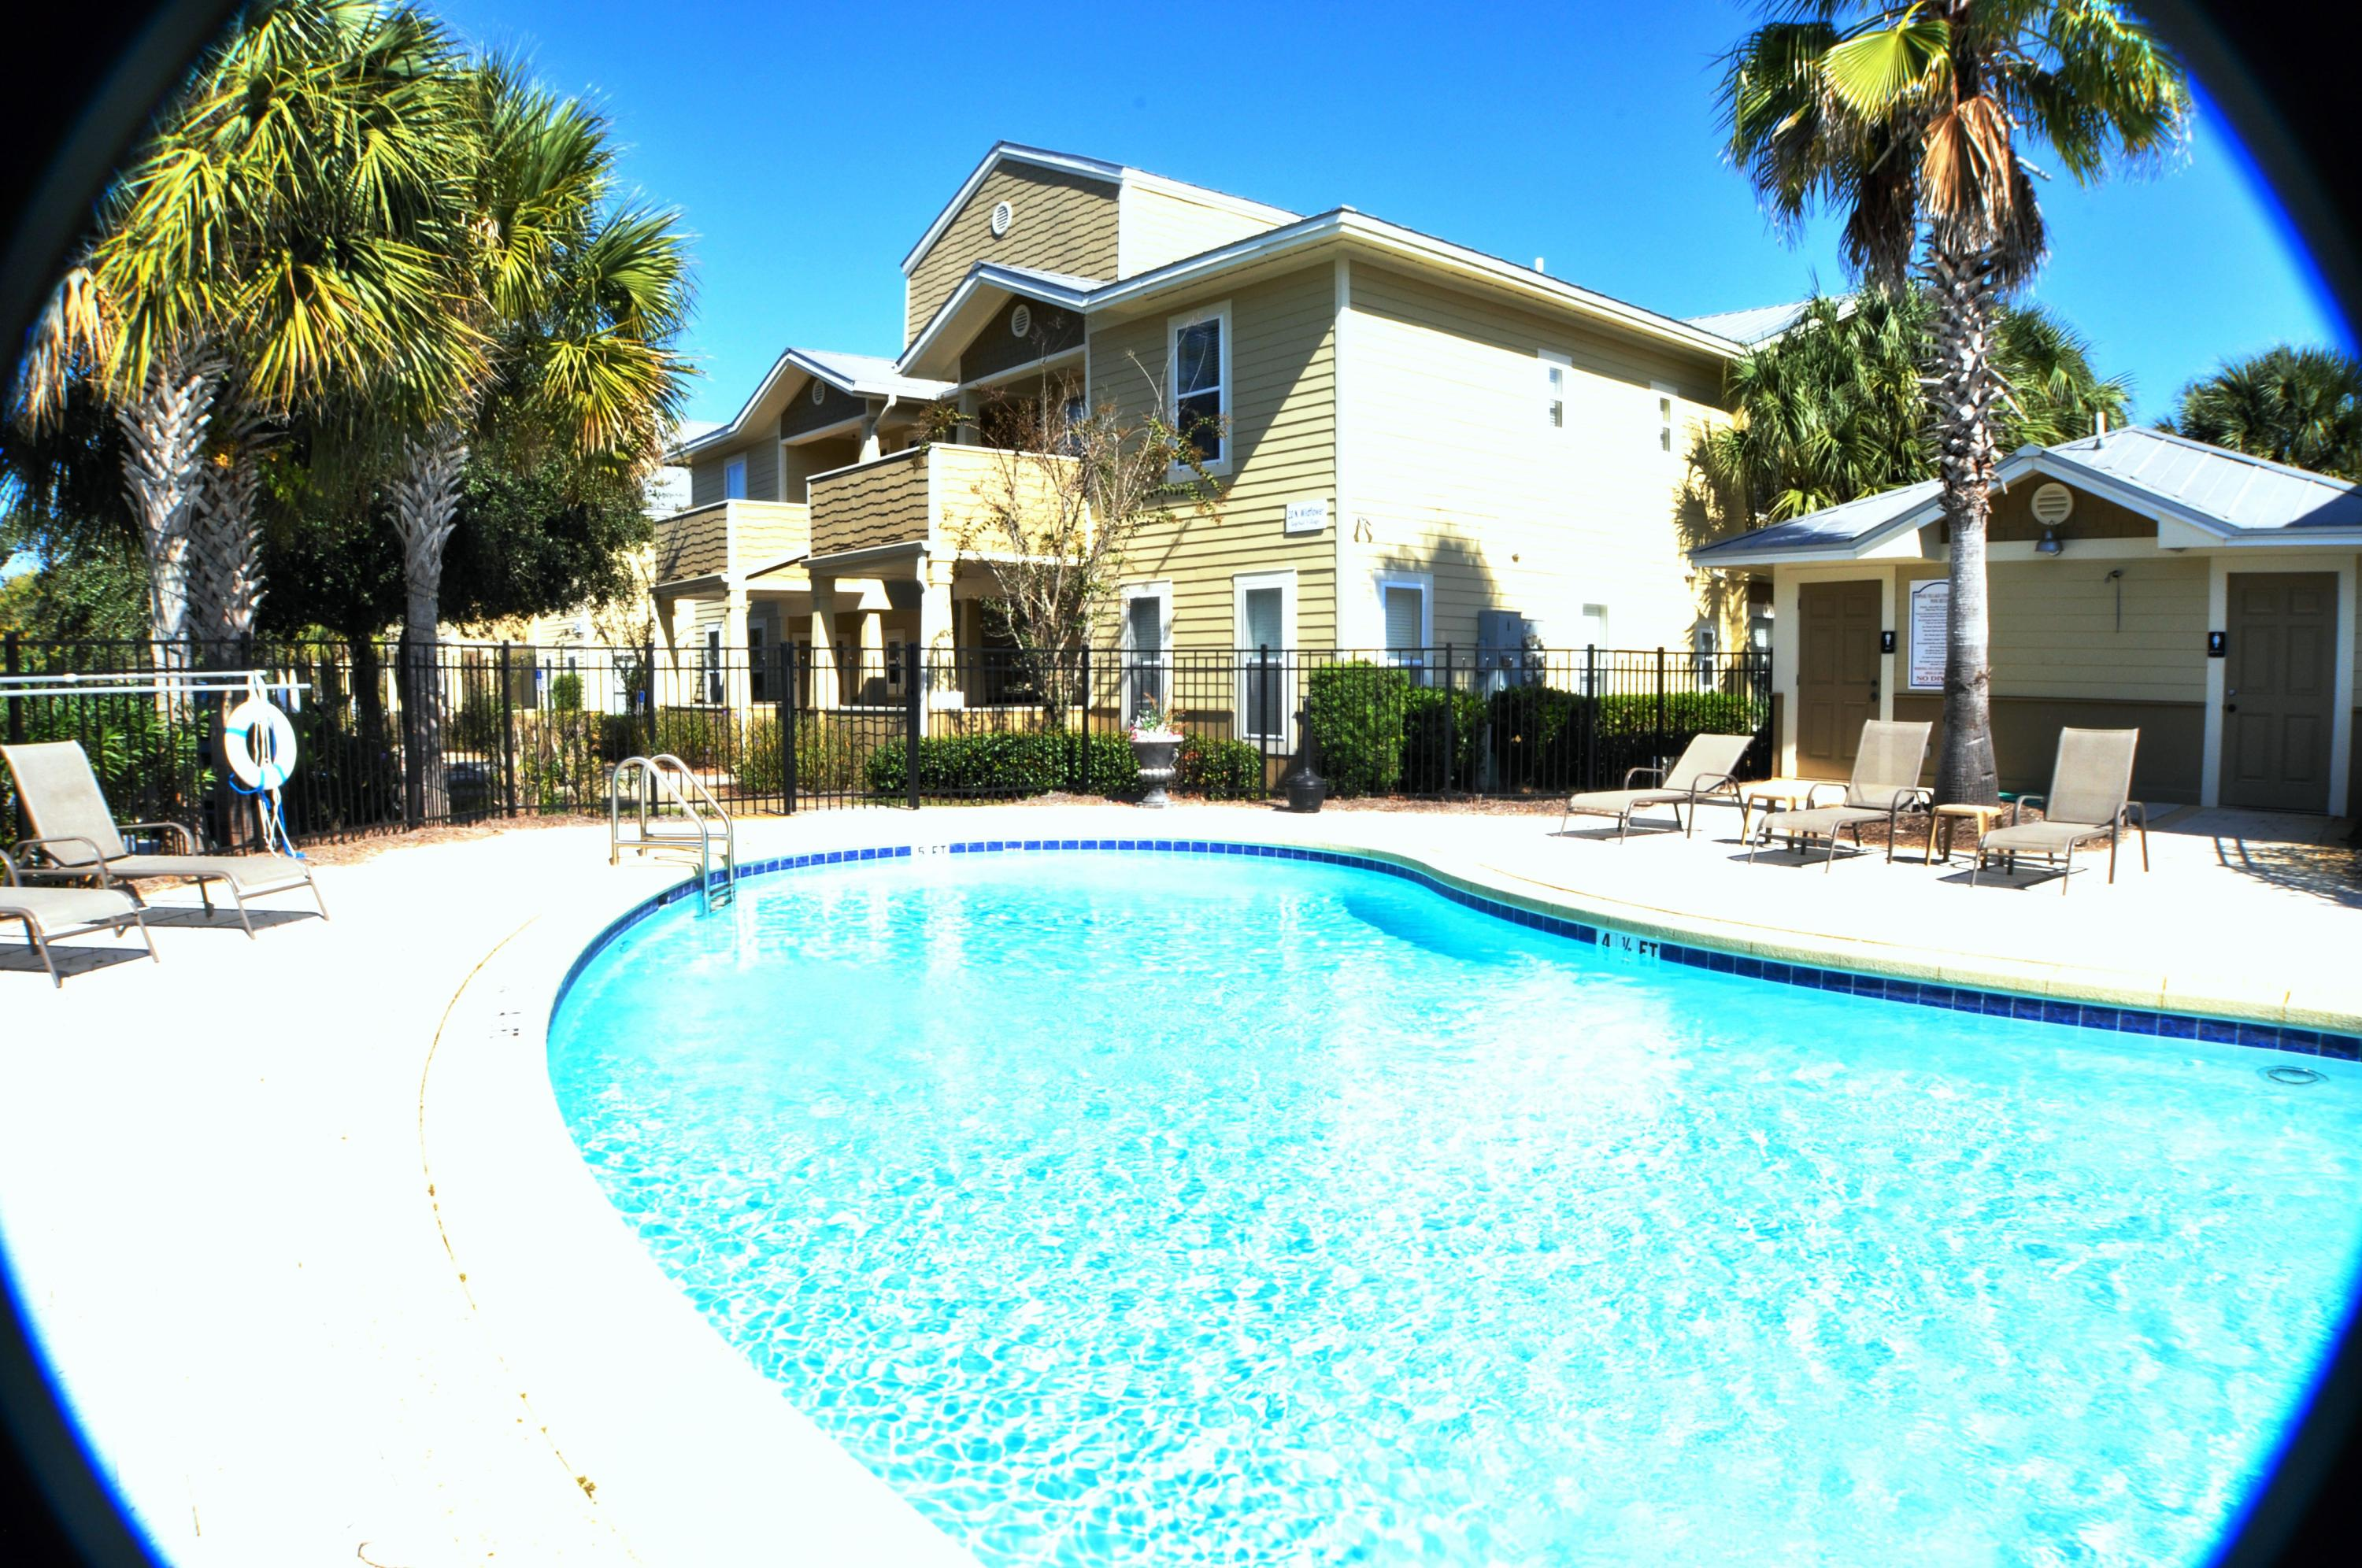 **New AC Unit put in this week 6/12/2019 with 10 yr Warranty** 2 BR 2 BA Condo -- second floor --facing the back. Unfurnished. All the appliances and washer and dryer are included.  Kitchen features black granite, real wood cabinets, black appliances, and tan tile. Both bedrooms have light walls and carpet. TopSail Village is near the new Sacred Heart Hospital, Walmart, Publix, Restaurants, and shopping. Beach access is less than a mile away. Pets under 40lbs are allowed.